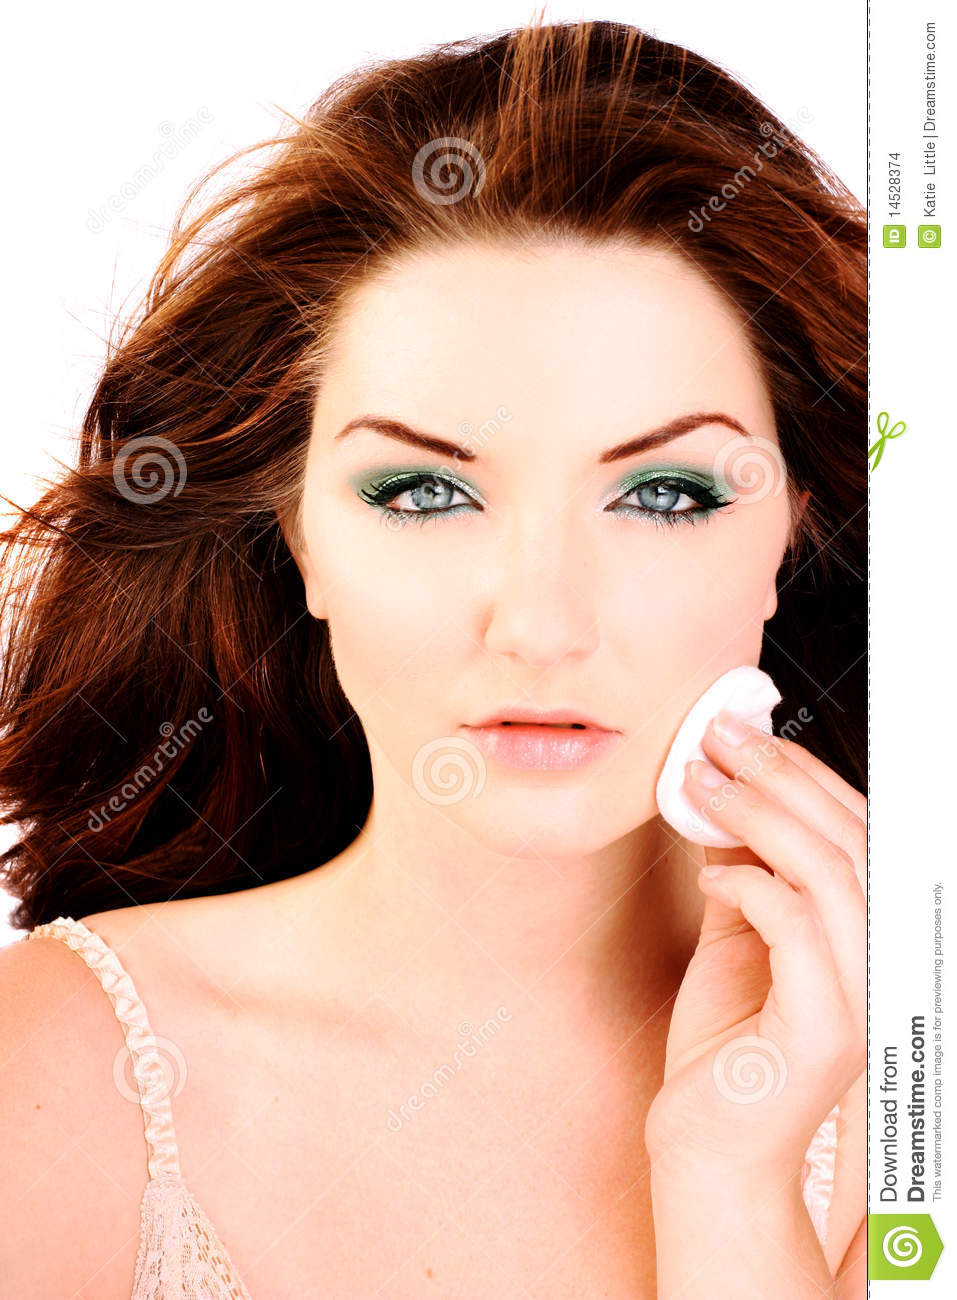 Glamorous woman removing her make up